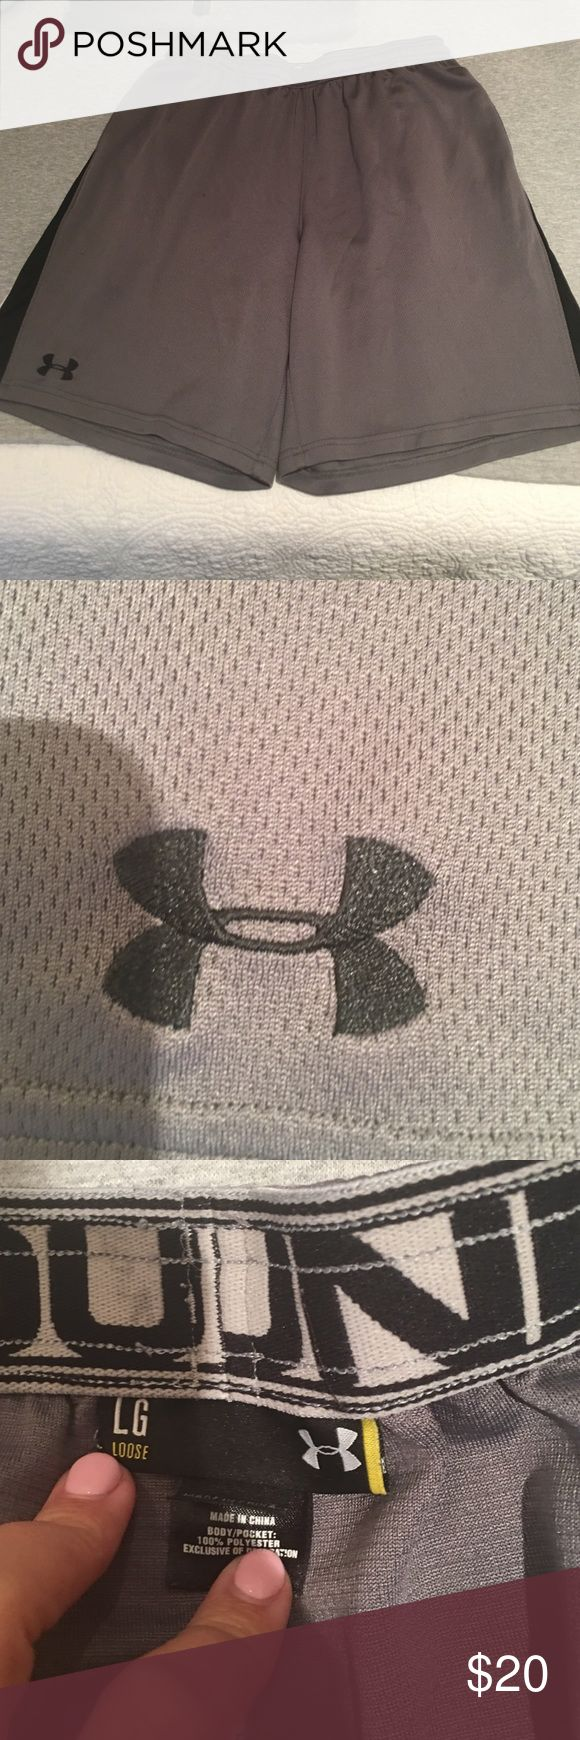 UNDER ARMOUR GRAY ATHLETIC SHORTS UNDER ARMOUR GRAY ATHLETIC SHORTS Under Armour Shorts Athletic